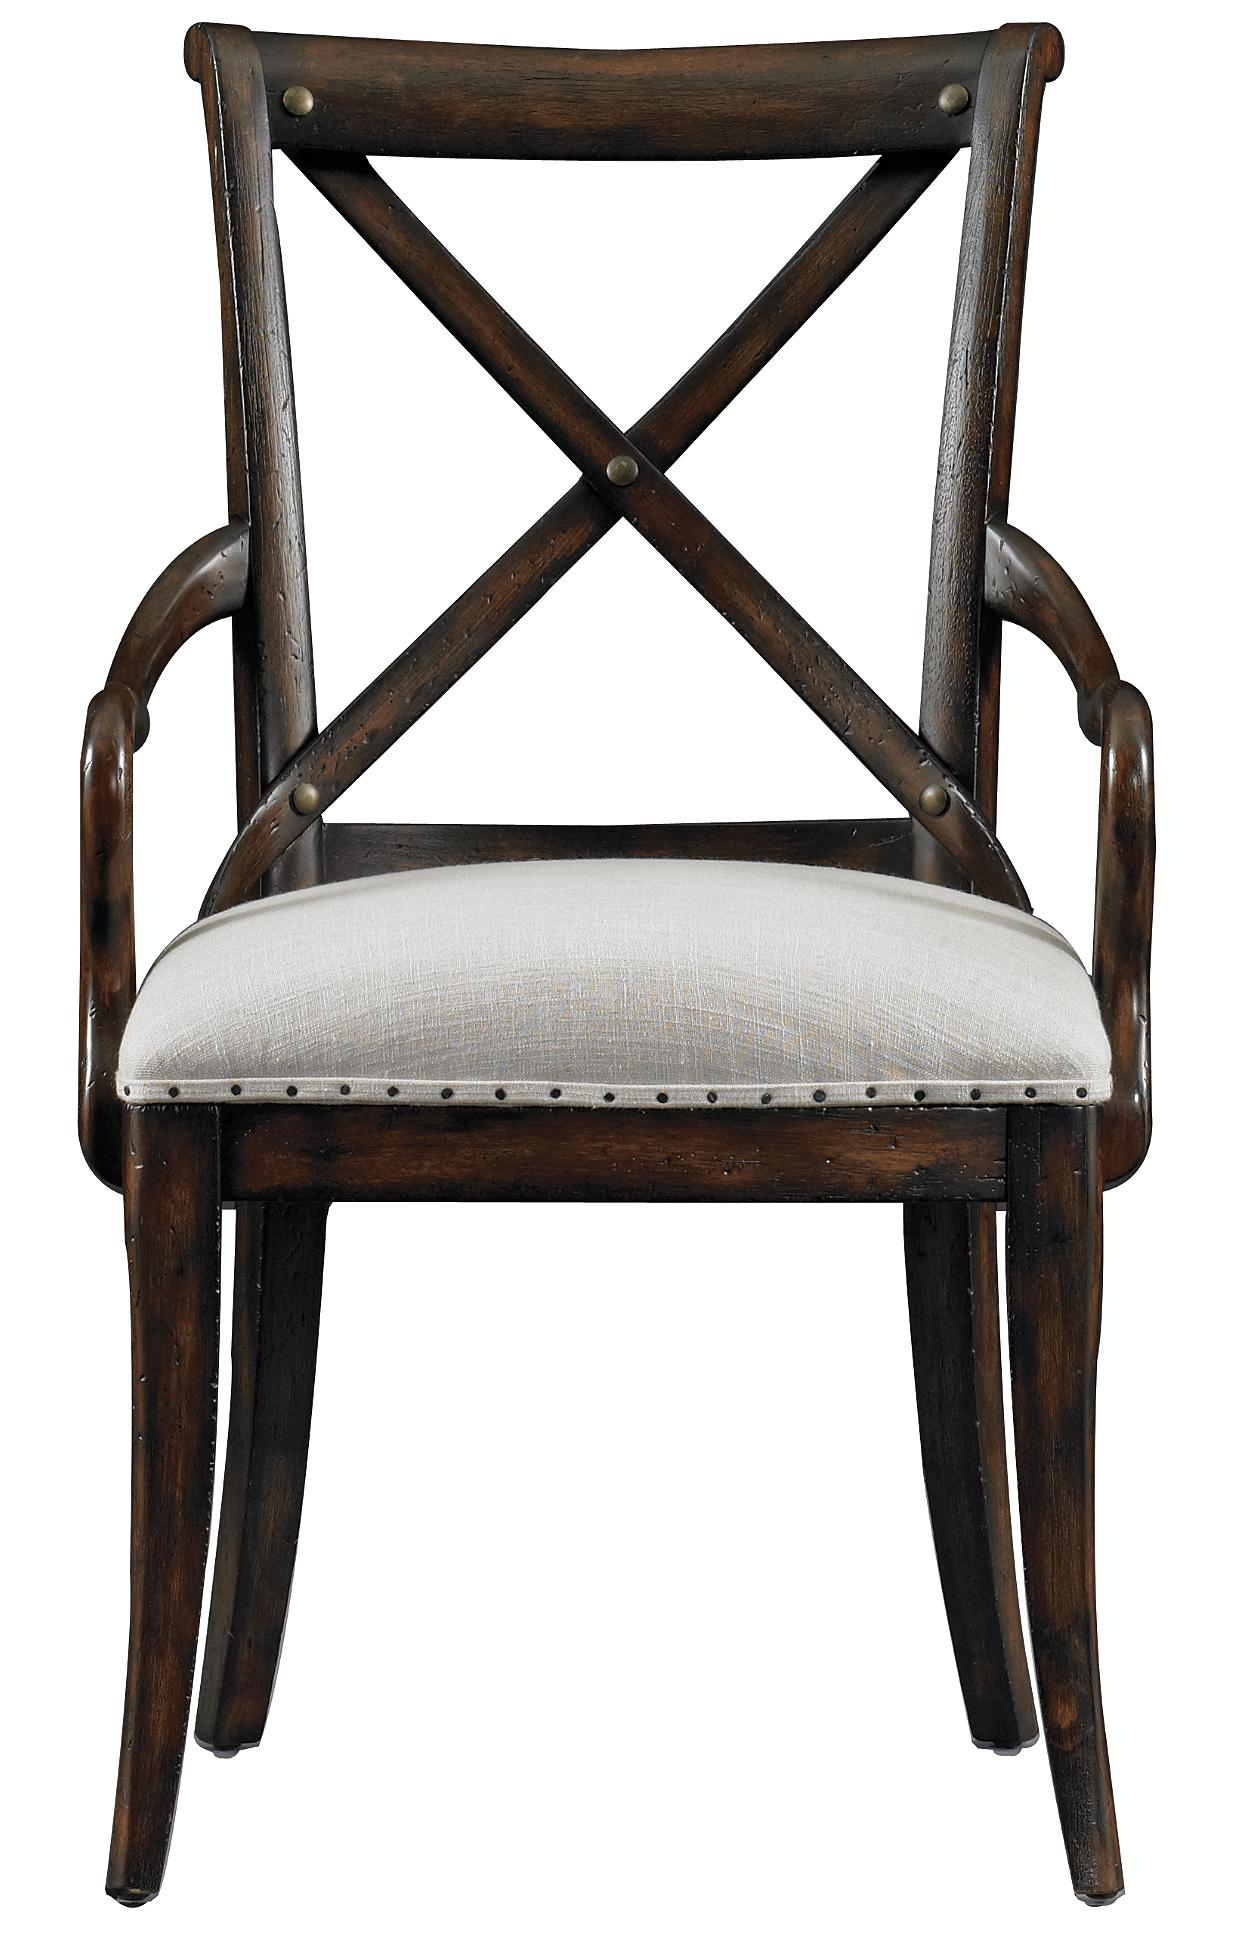 Stanley Furniture European Farmhouse Fairleigh Fields Host Chair - Item Number: 018-11-70